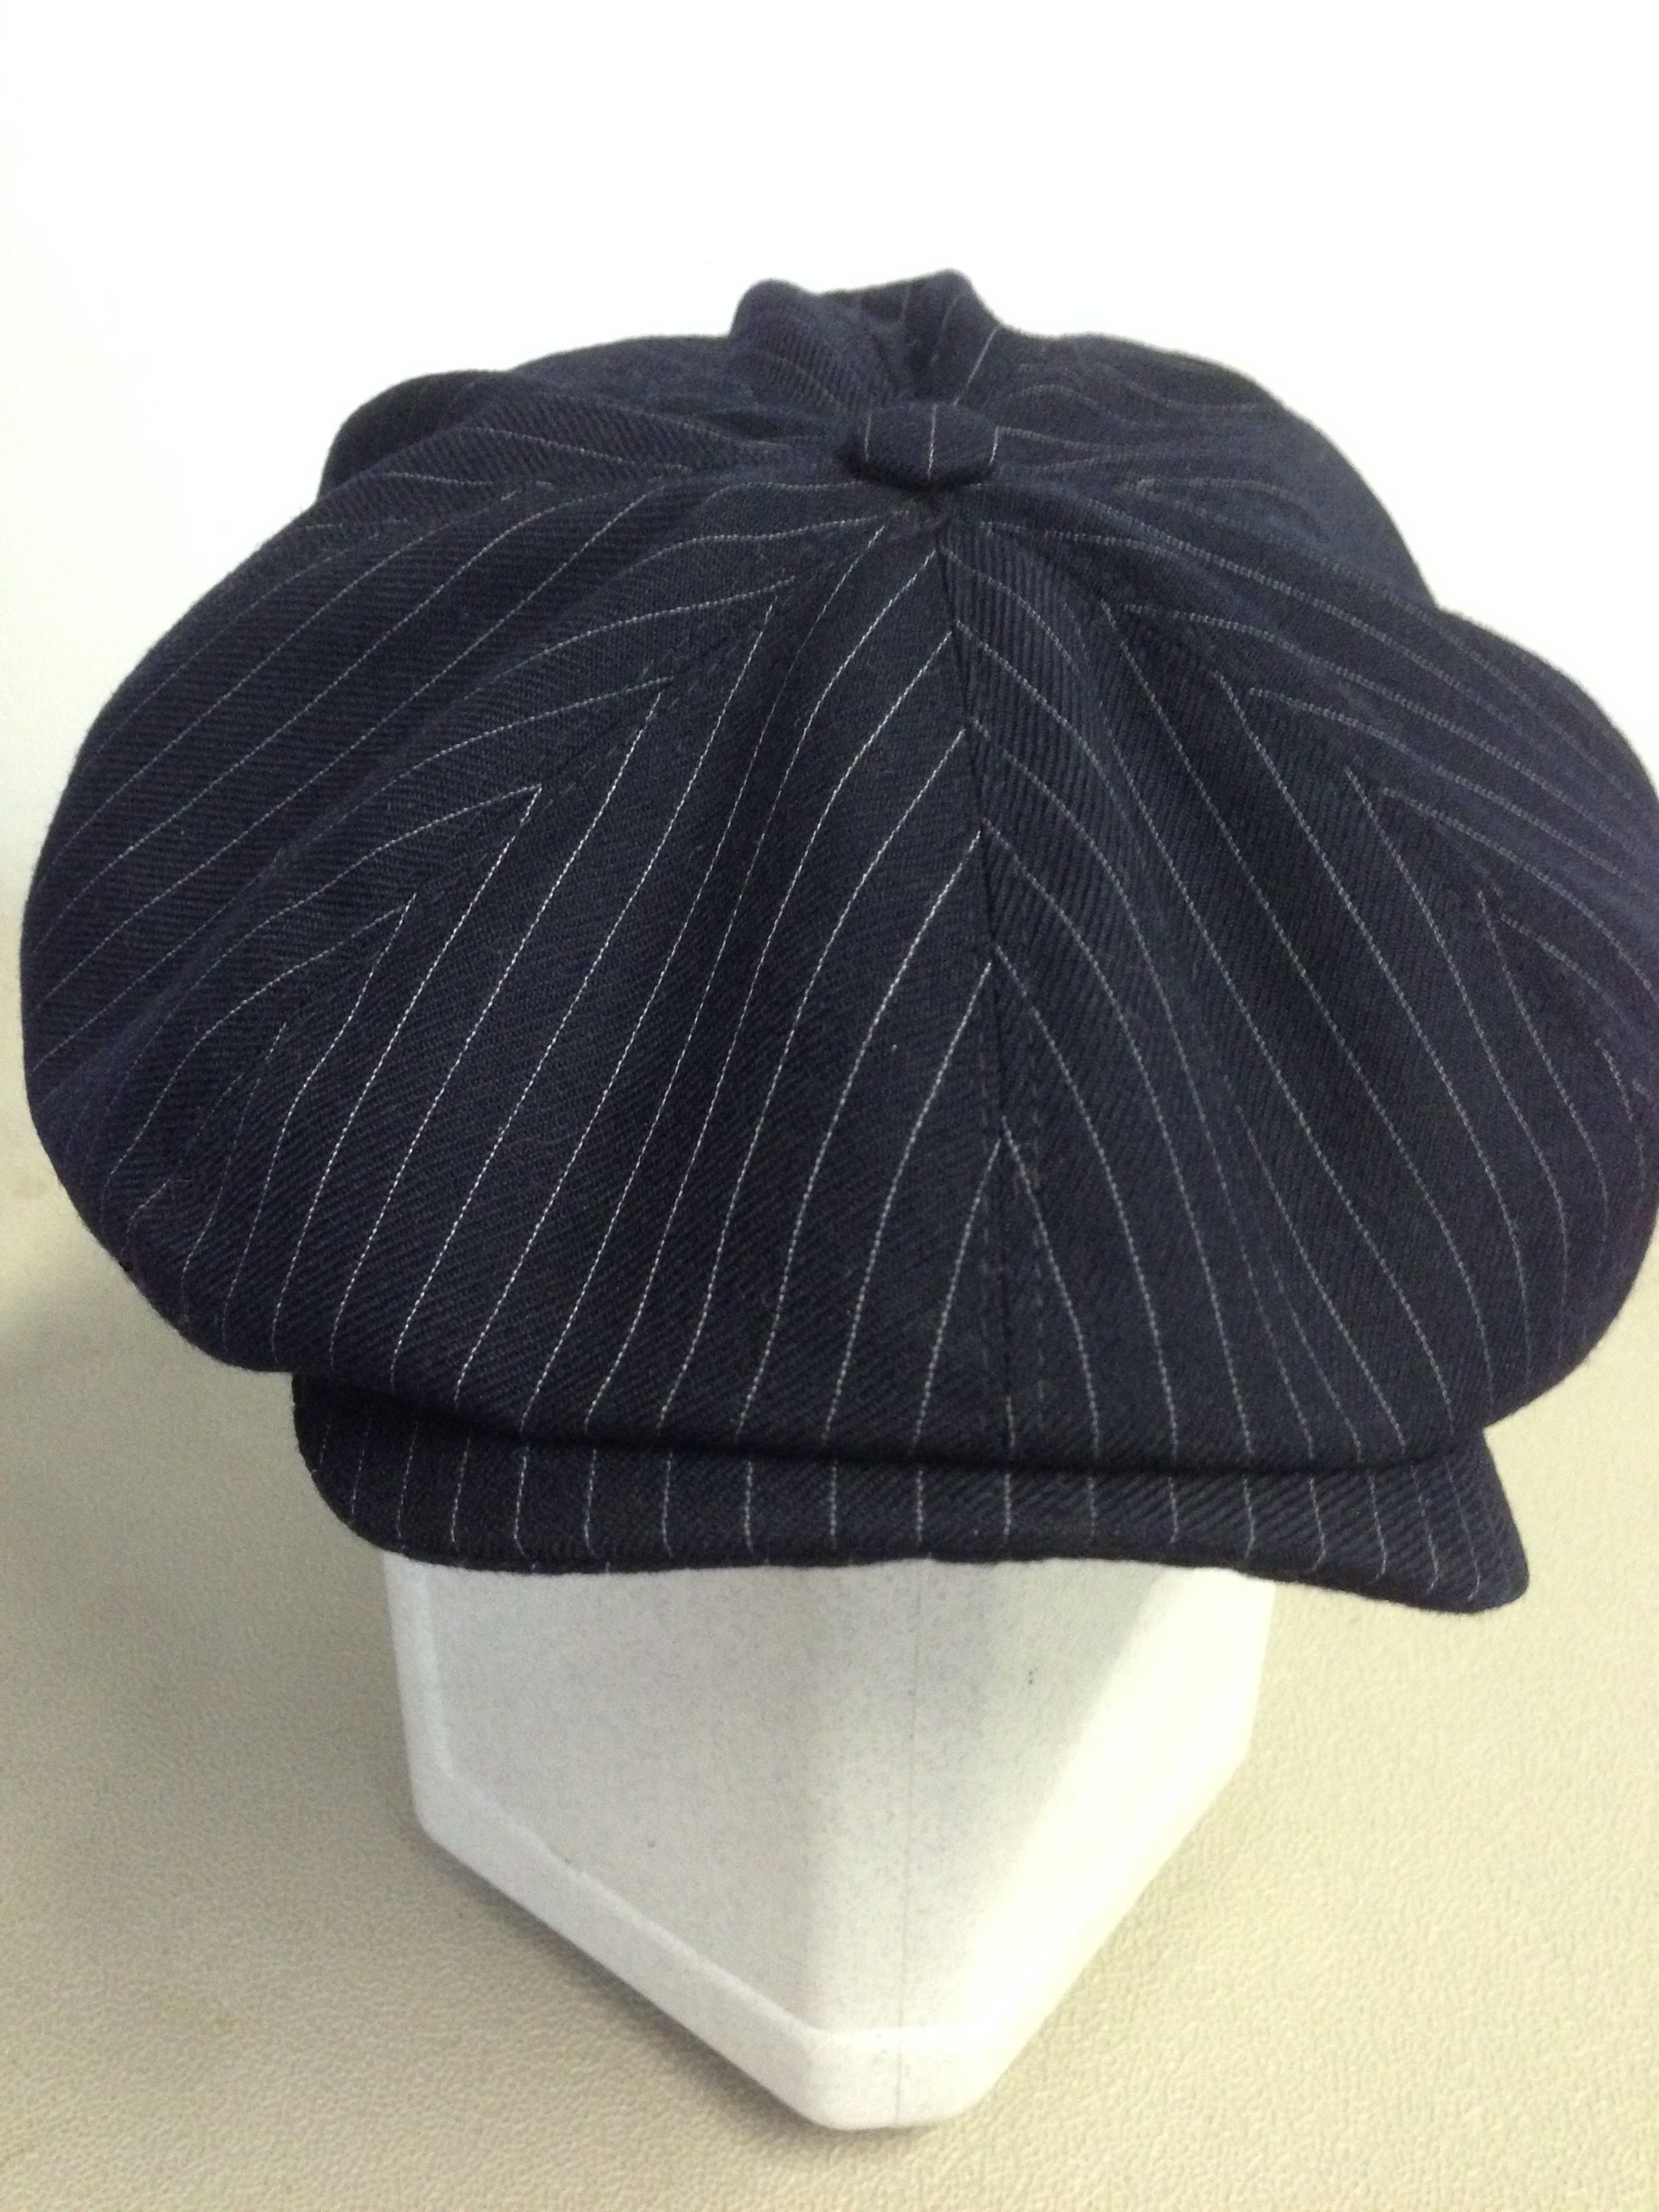 I just received this cap from Kempadoo Millar in Yorkshire a82fbea0009